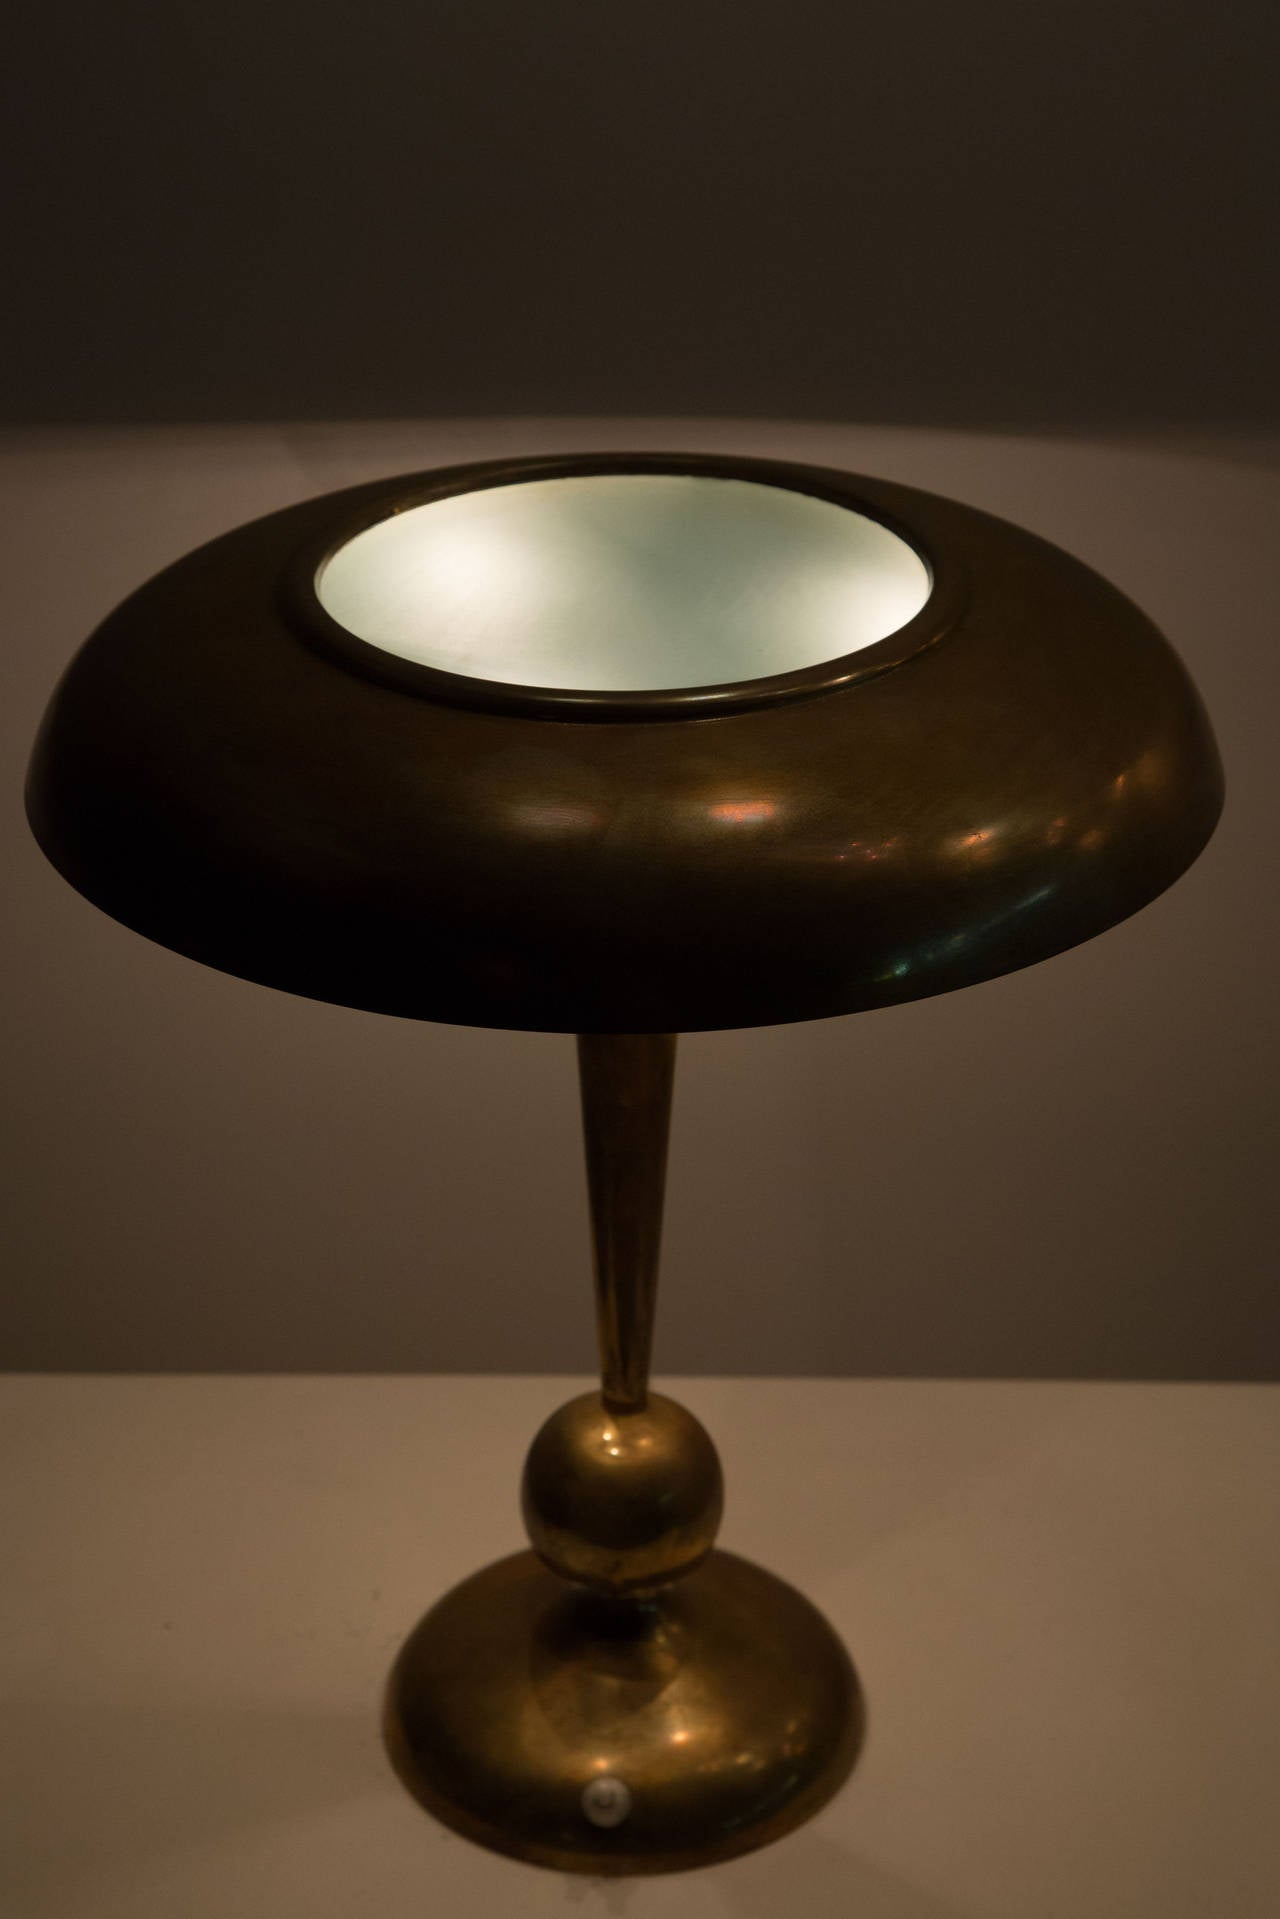 Brass table lamp with tilt swivel ball joint at base.